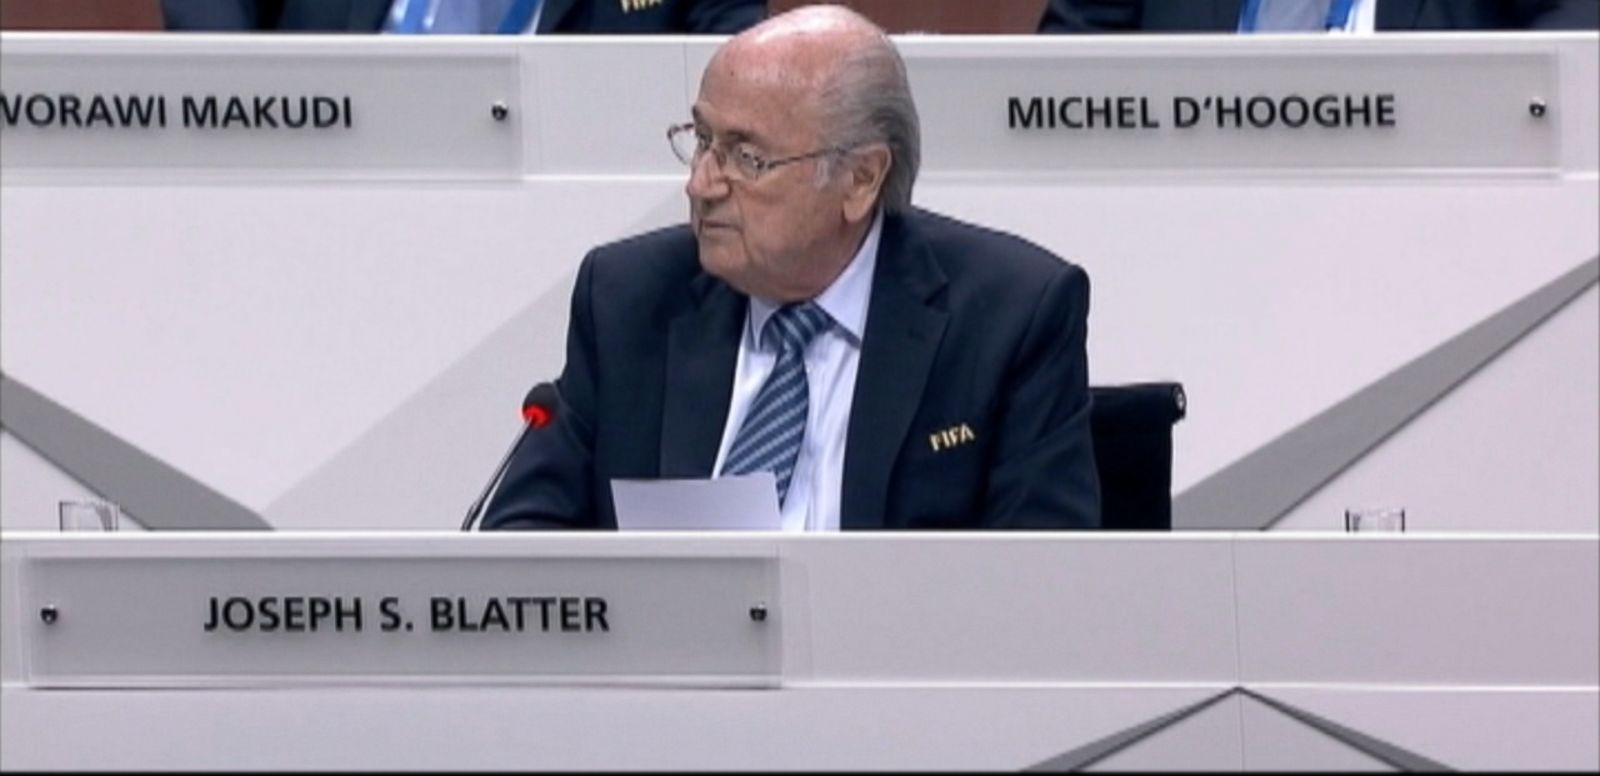 VIDEO: Judgment Day for Sepp Blatter